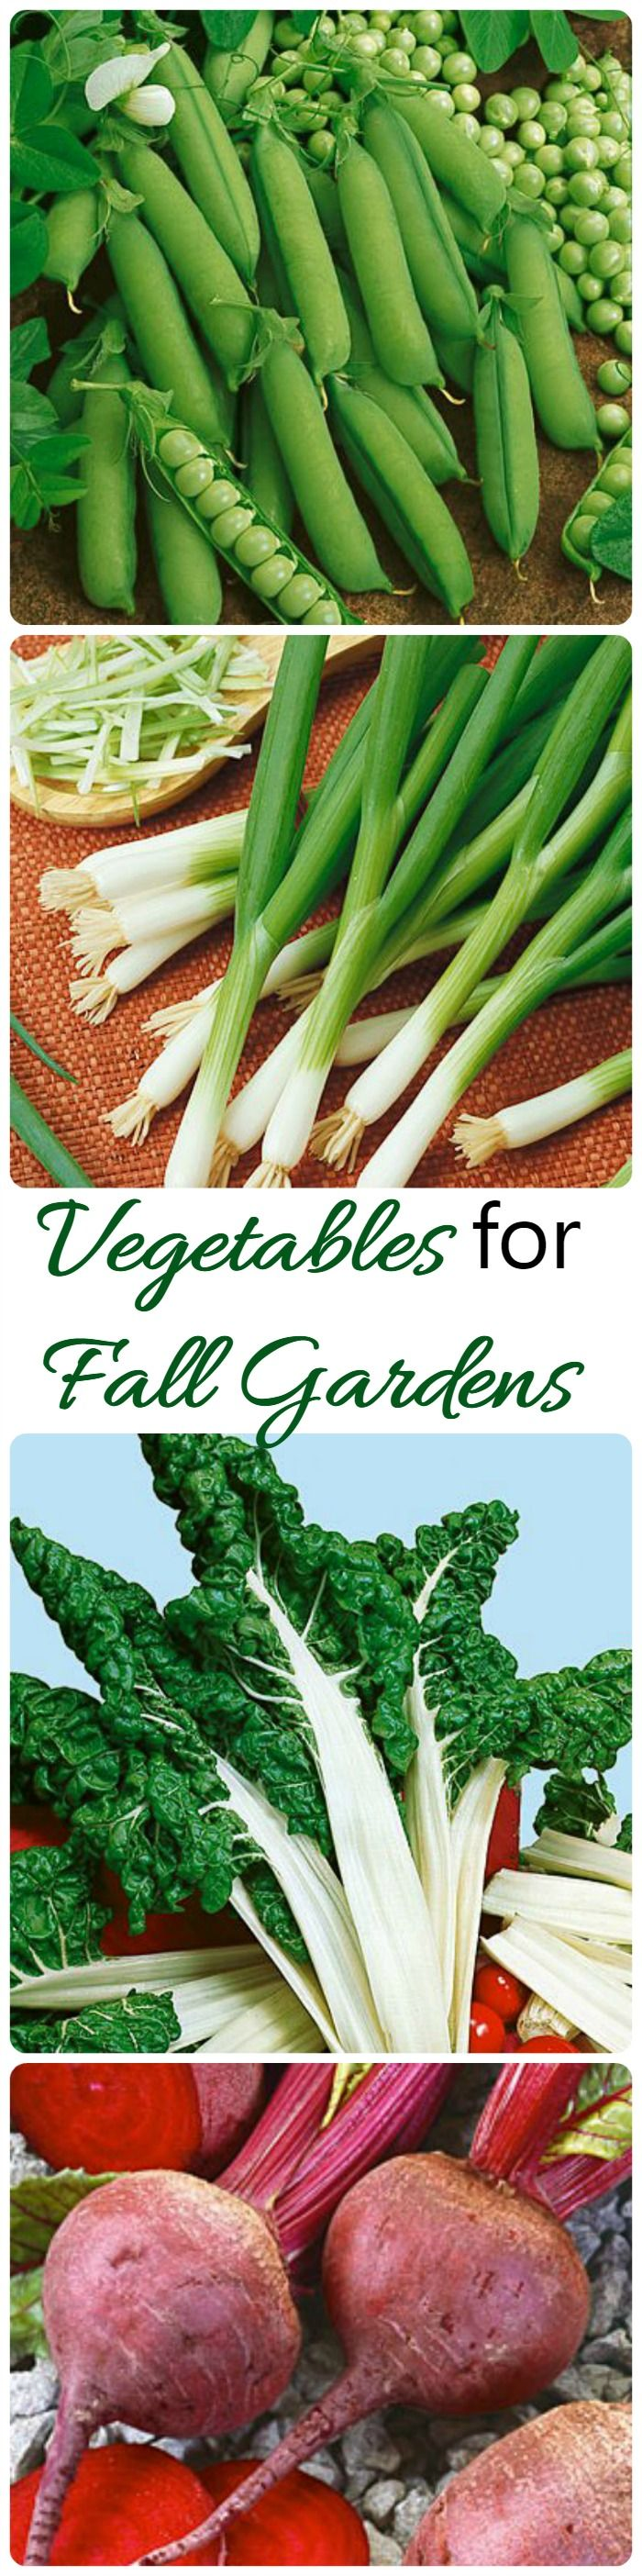 Fall Gardens What Vegetables To Plant Now Fall Garden 640 x 480